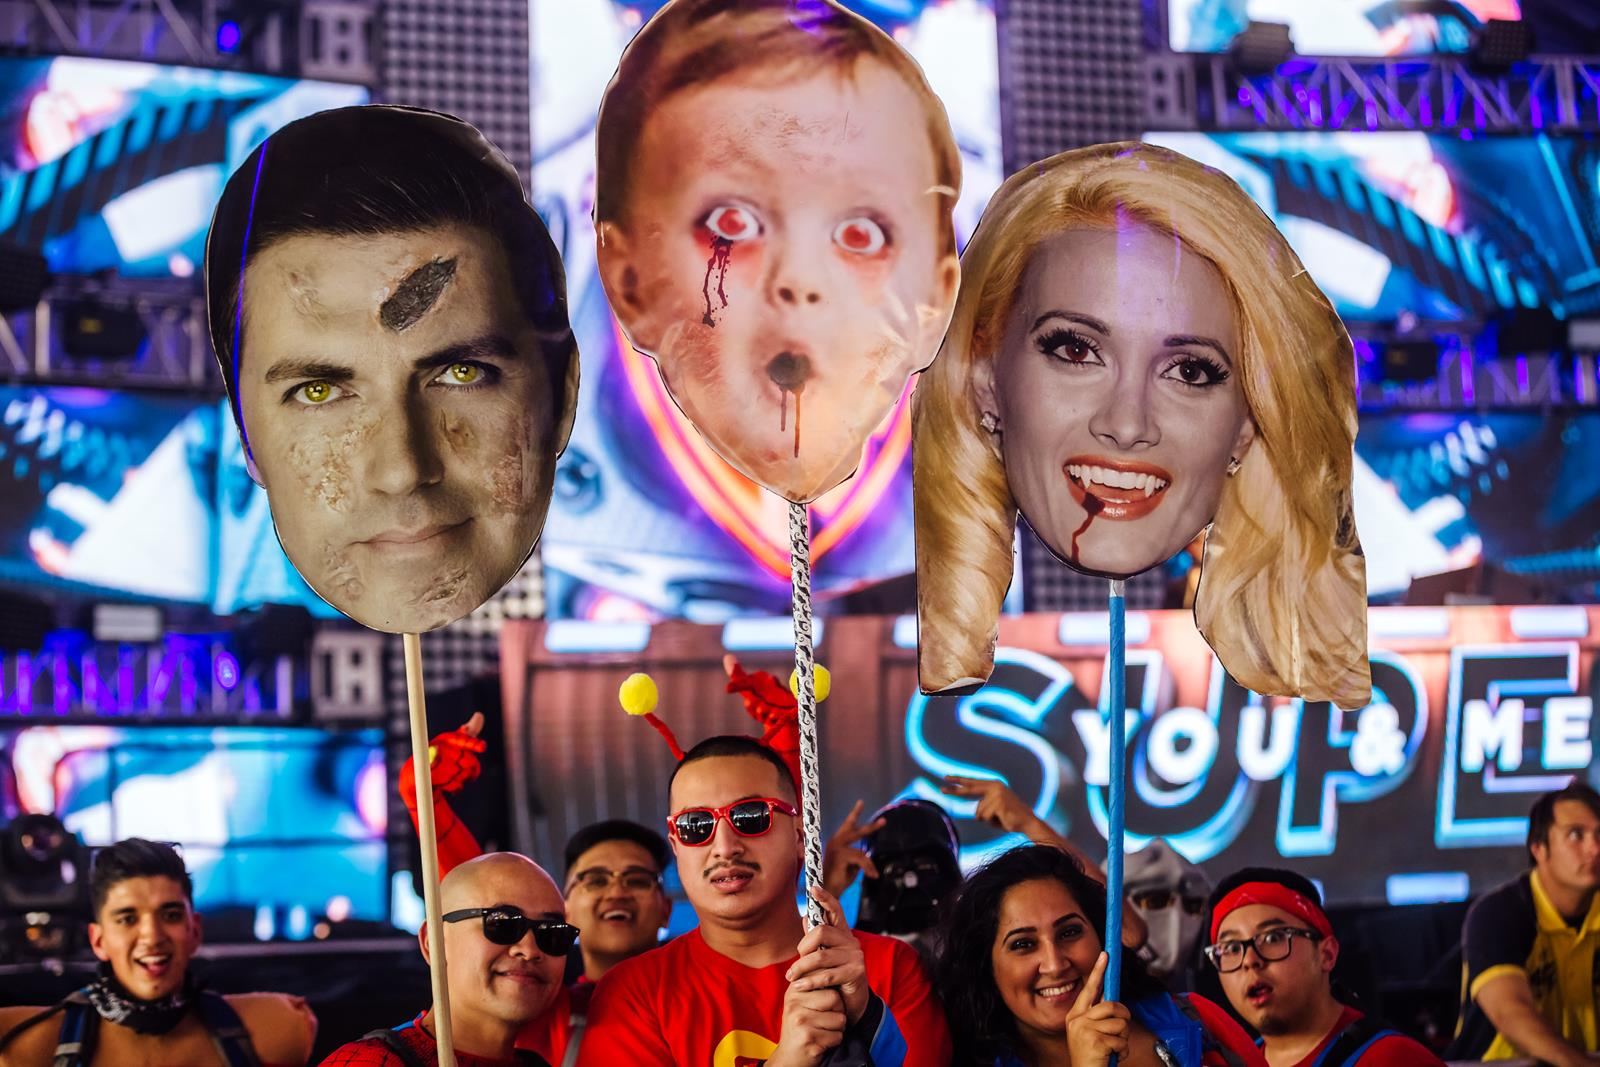 Check out these crazy Halloween festival photos